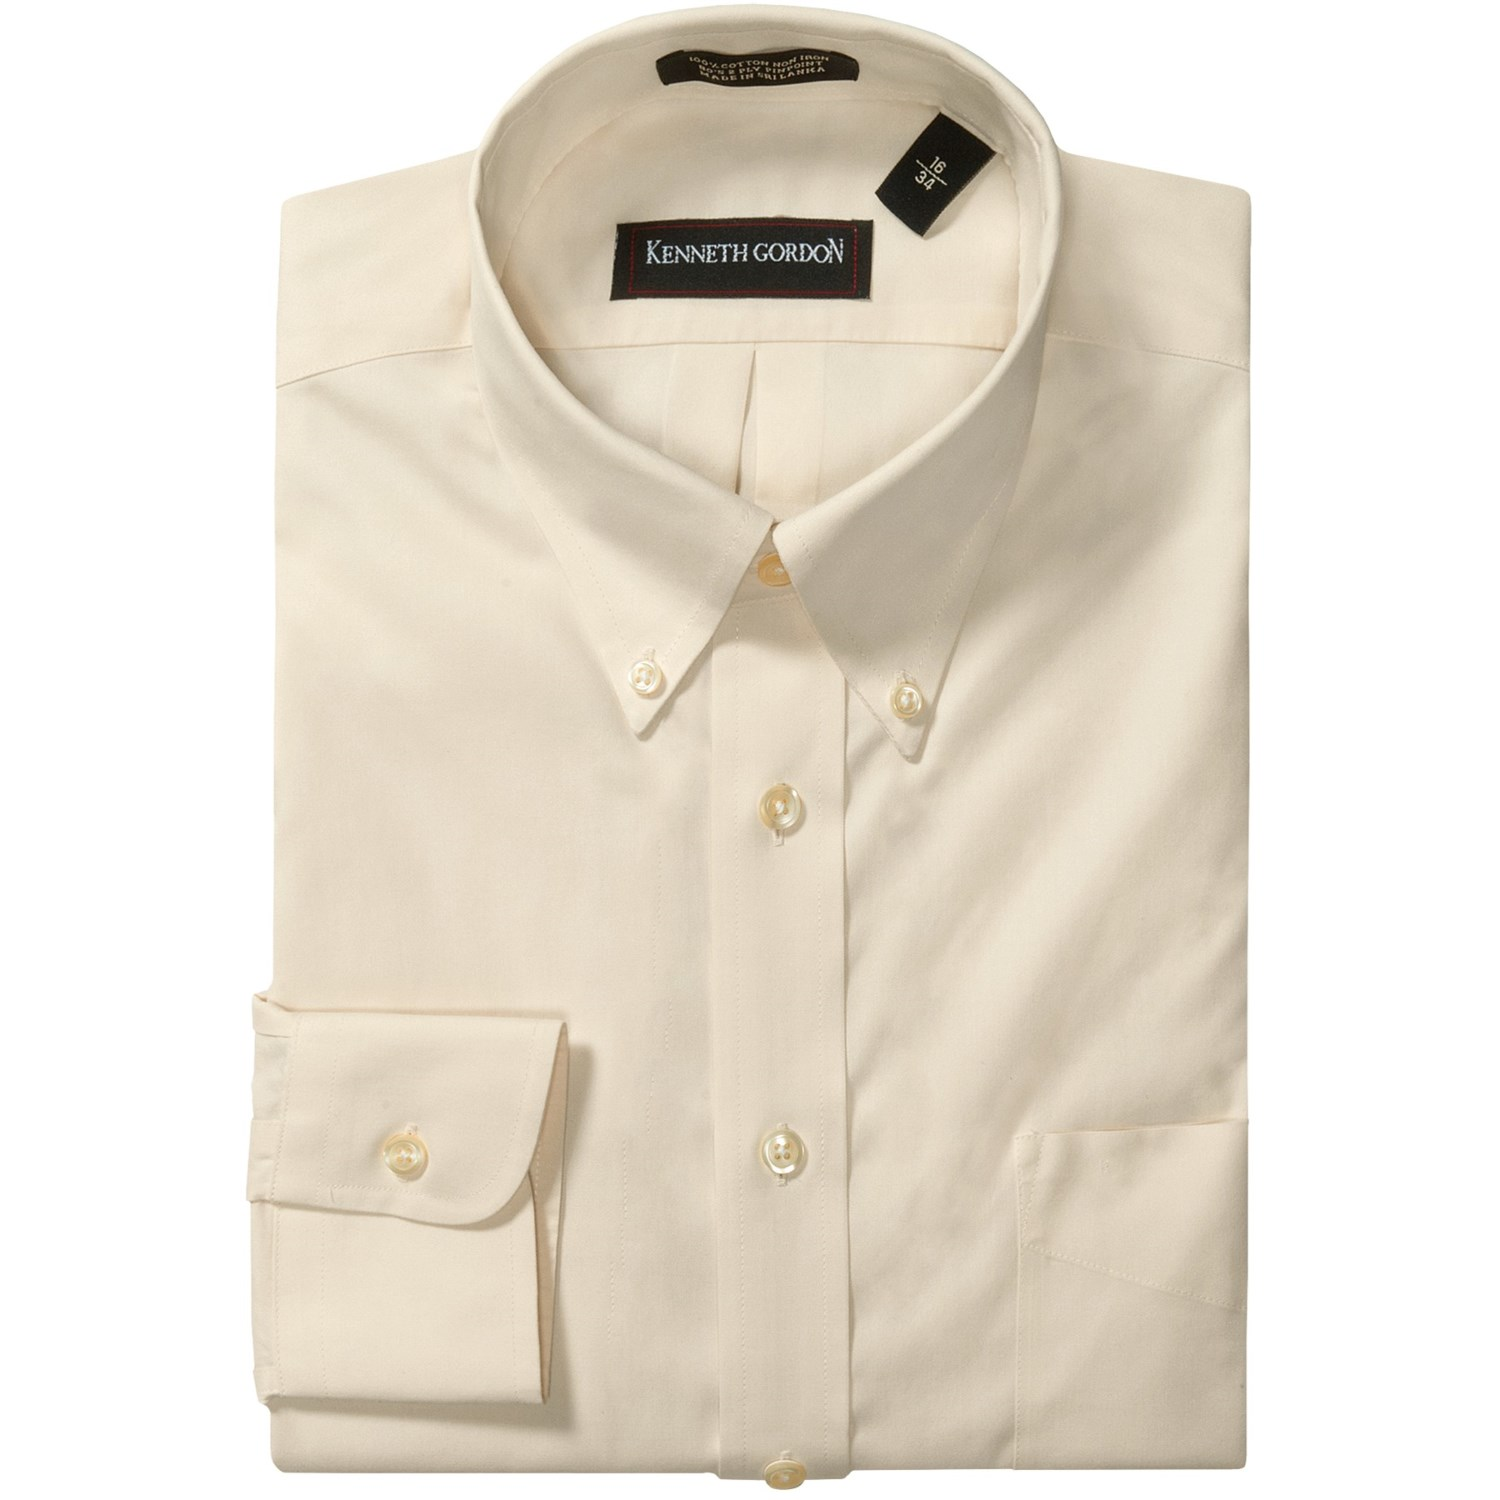 Kenneth Gordon Wrinkle Free Pinpoint Cotton Dress Shirt